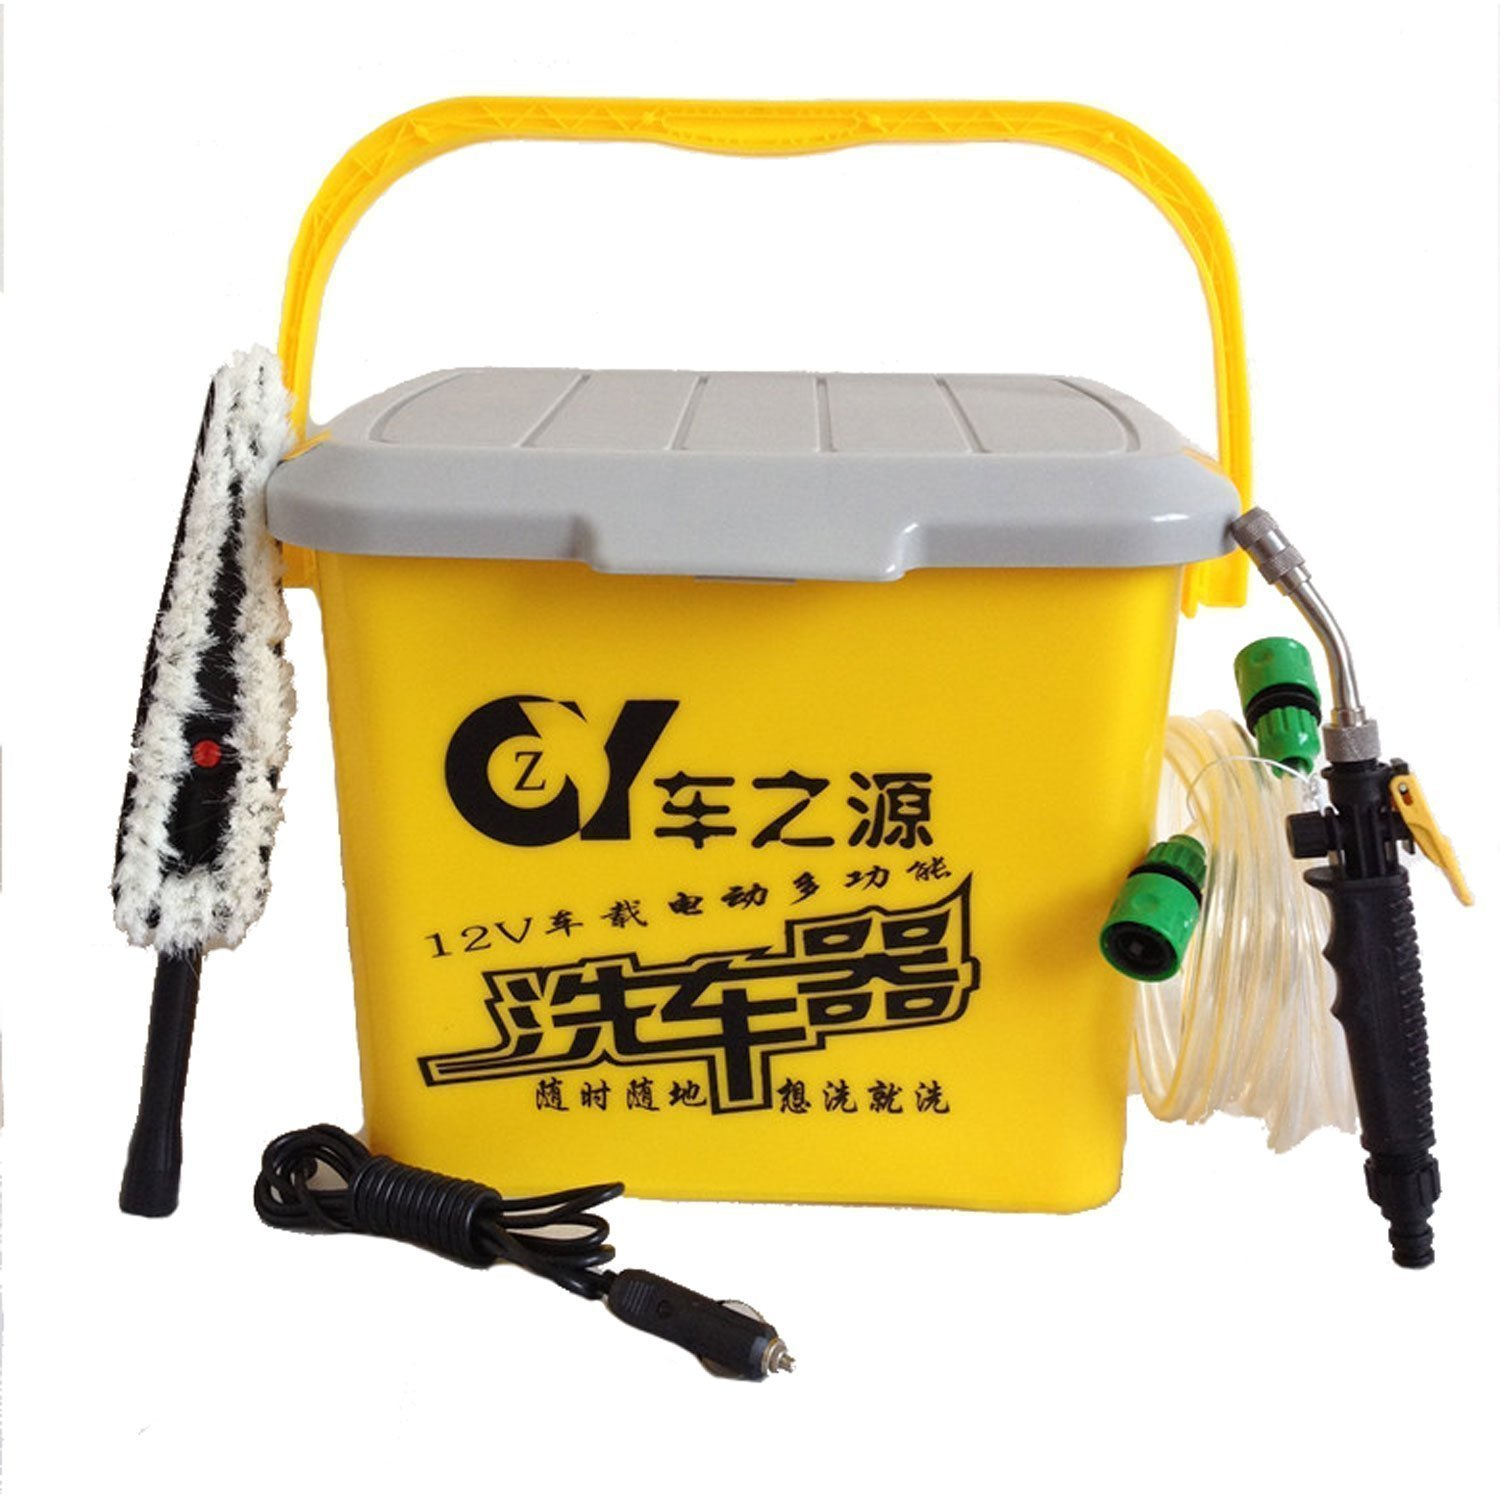 May rua xe The source of high voltage electric washer spray foam gun protection paint washing machin